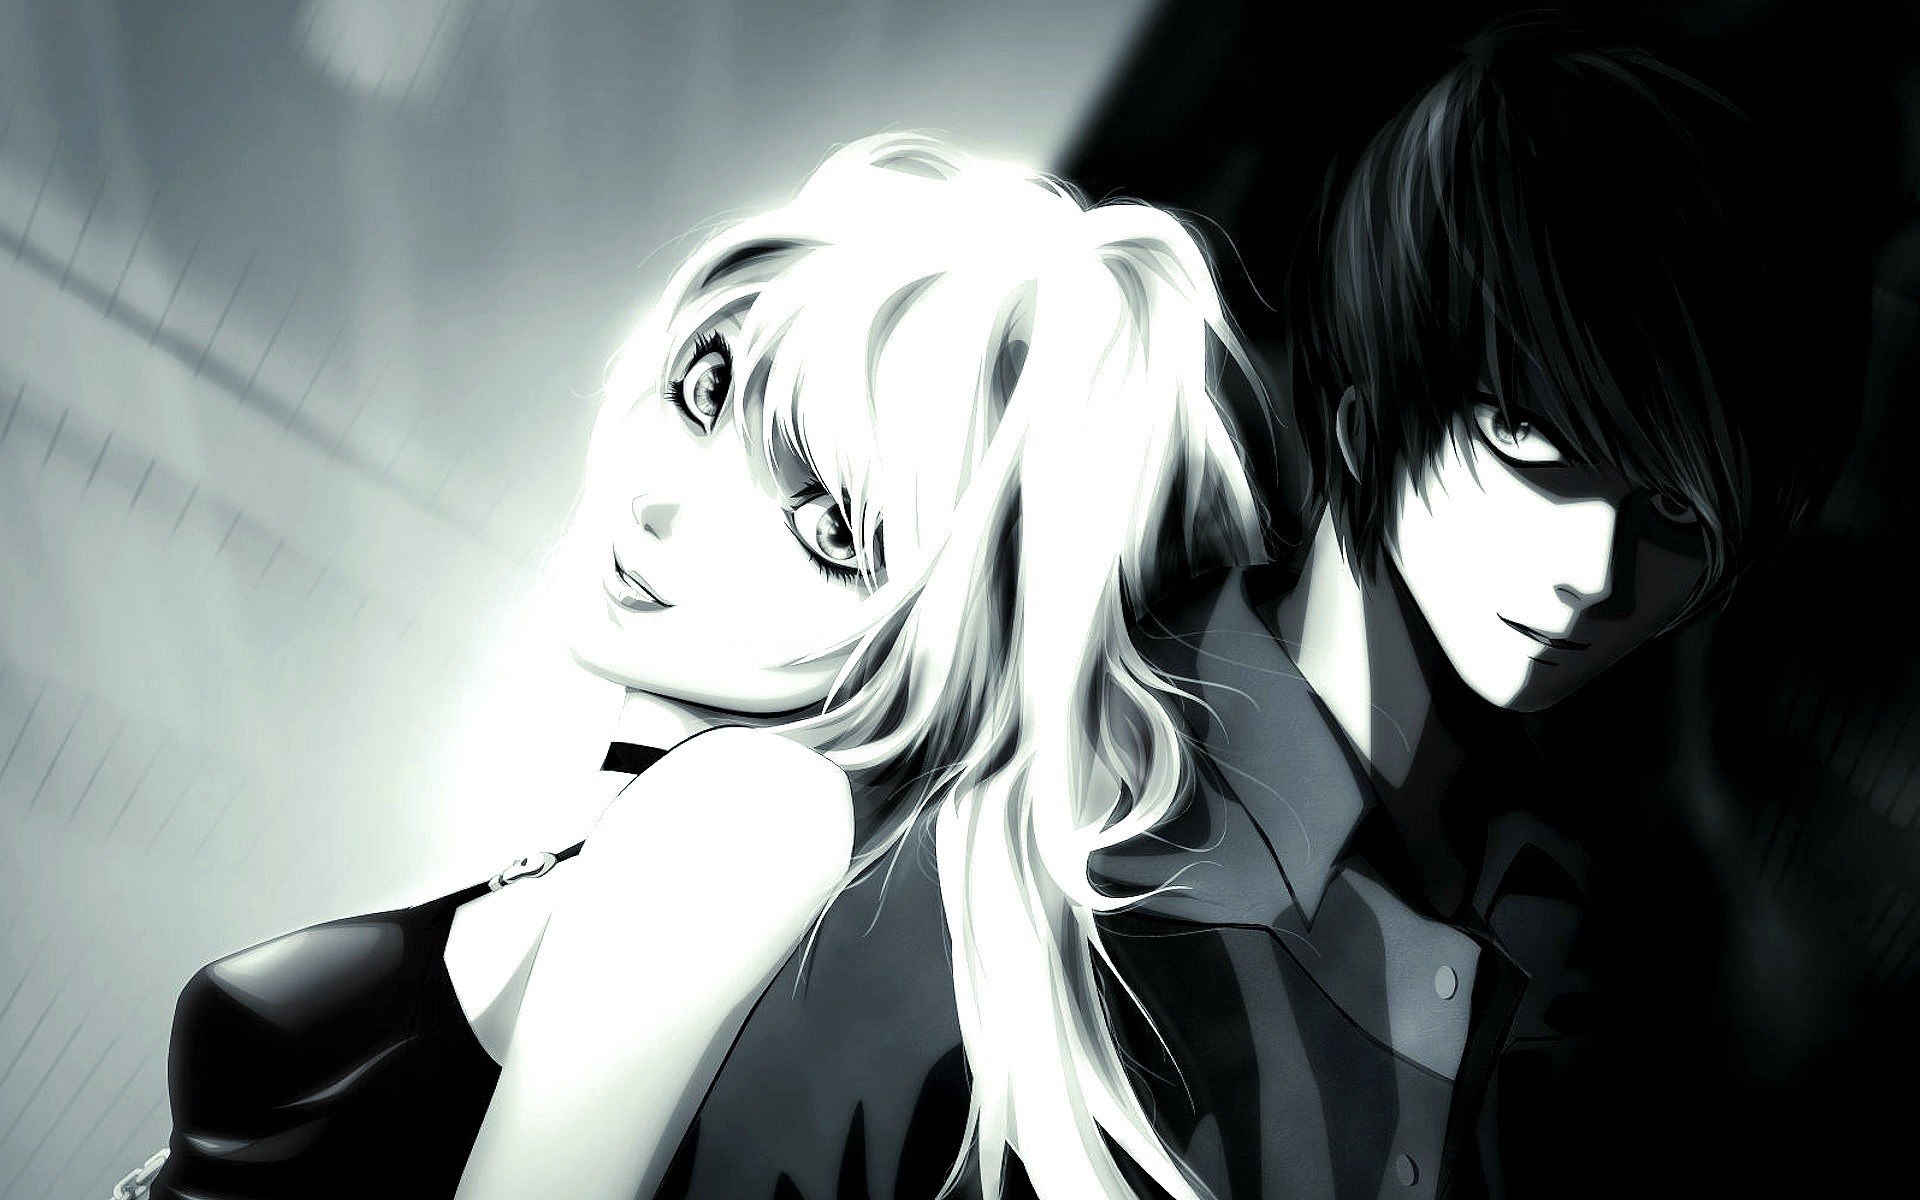 Anime Love Background Posted By Samantha Tremblay